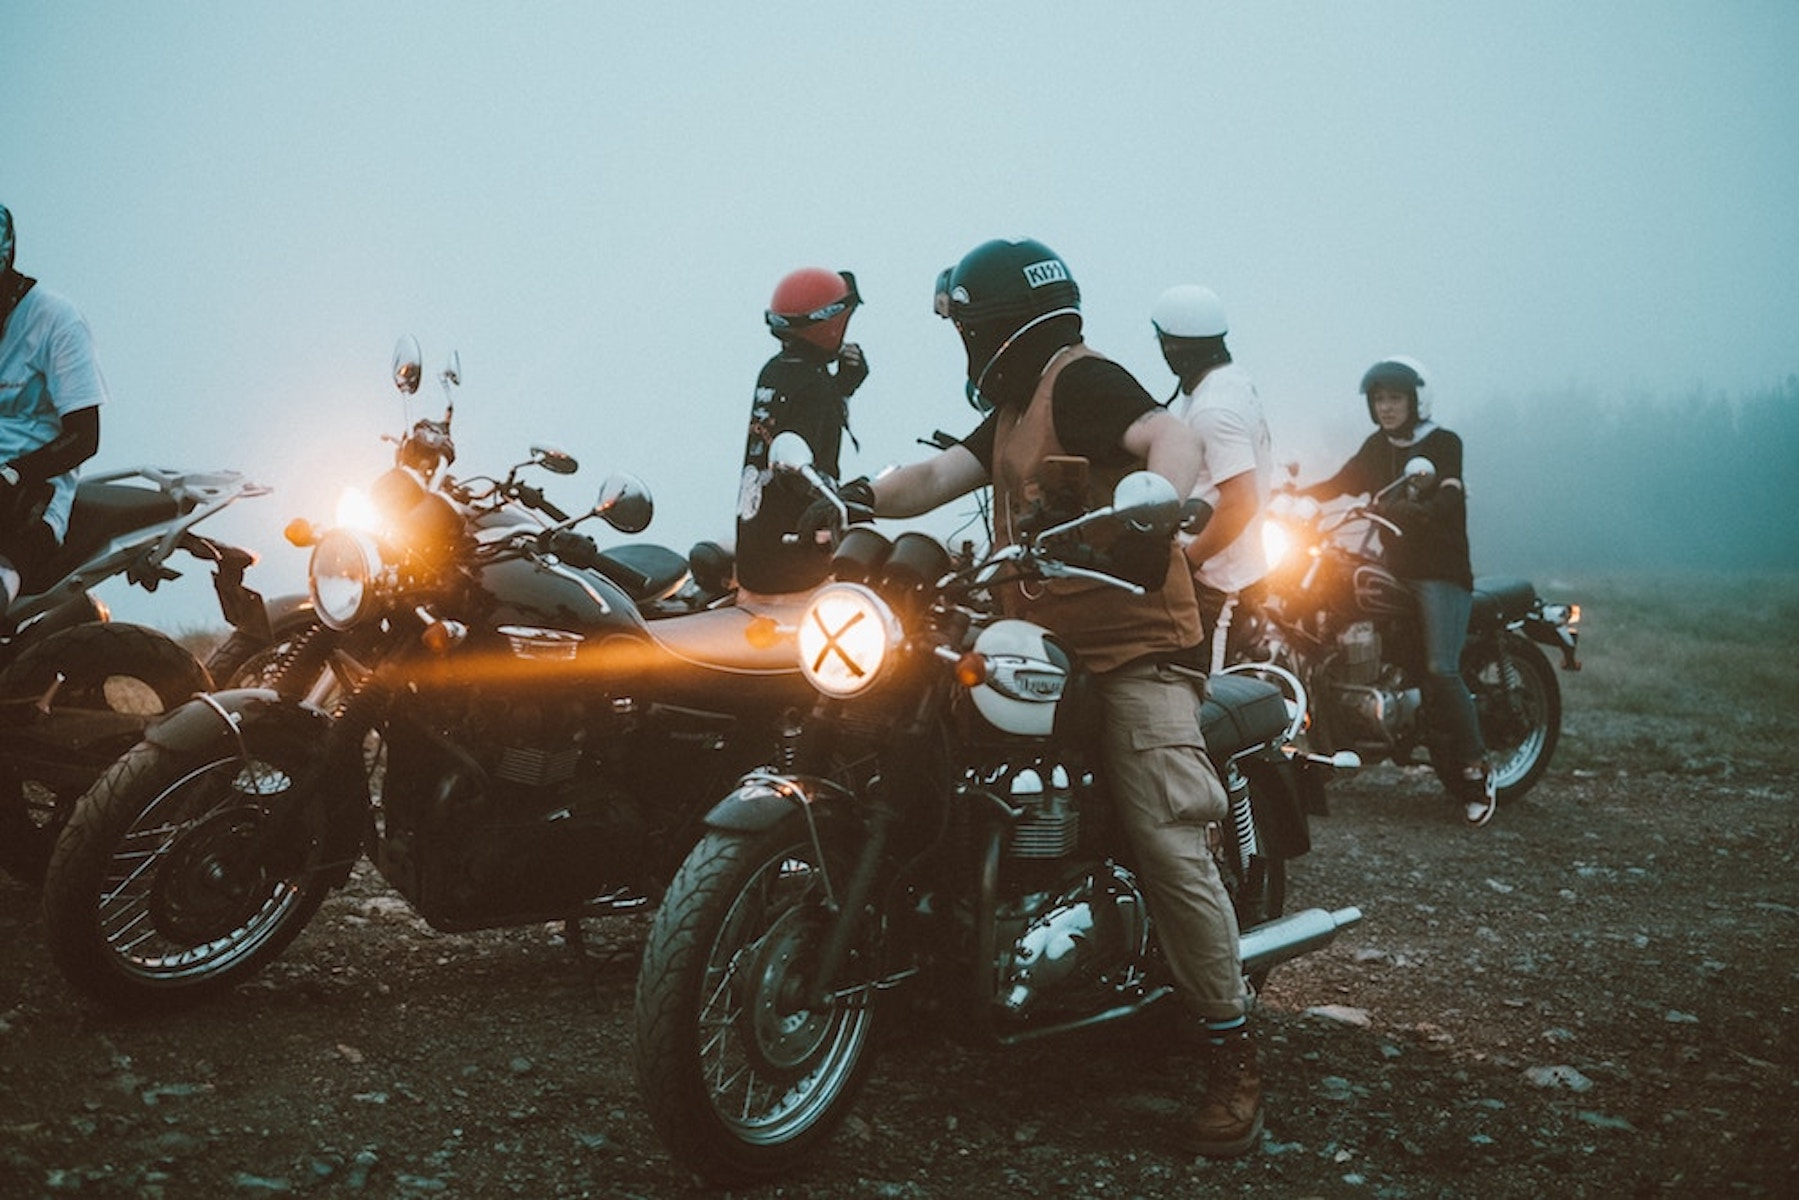 a group of motorcycle riders gather on a foggy morning